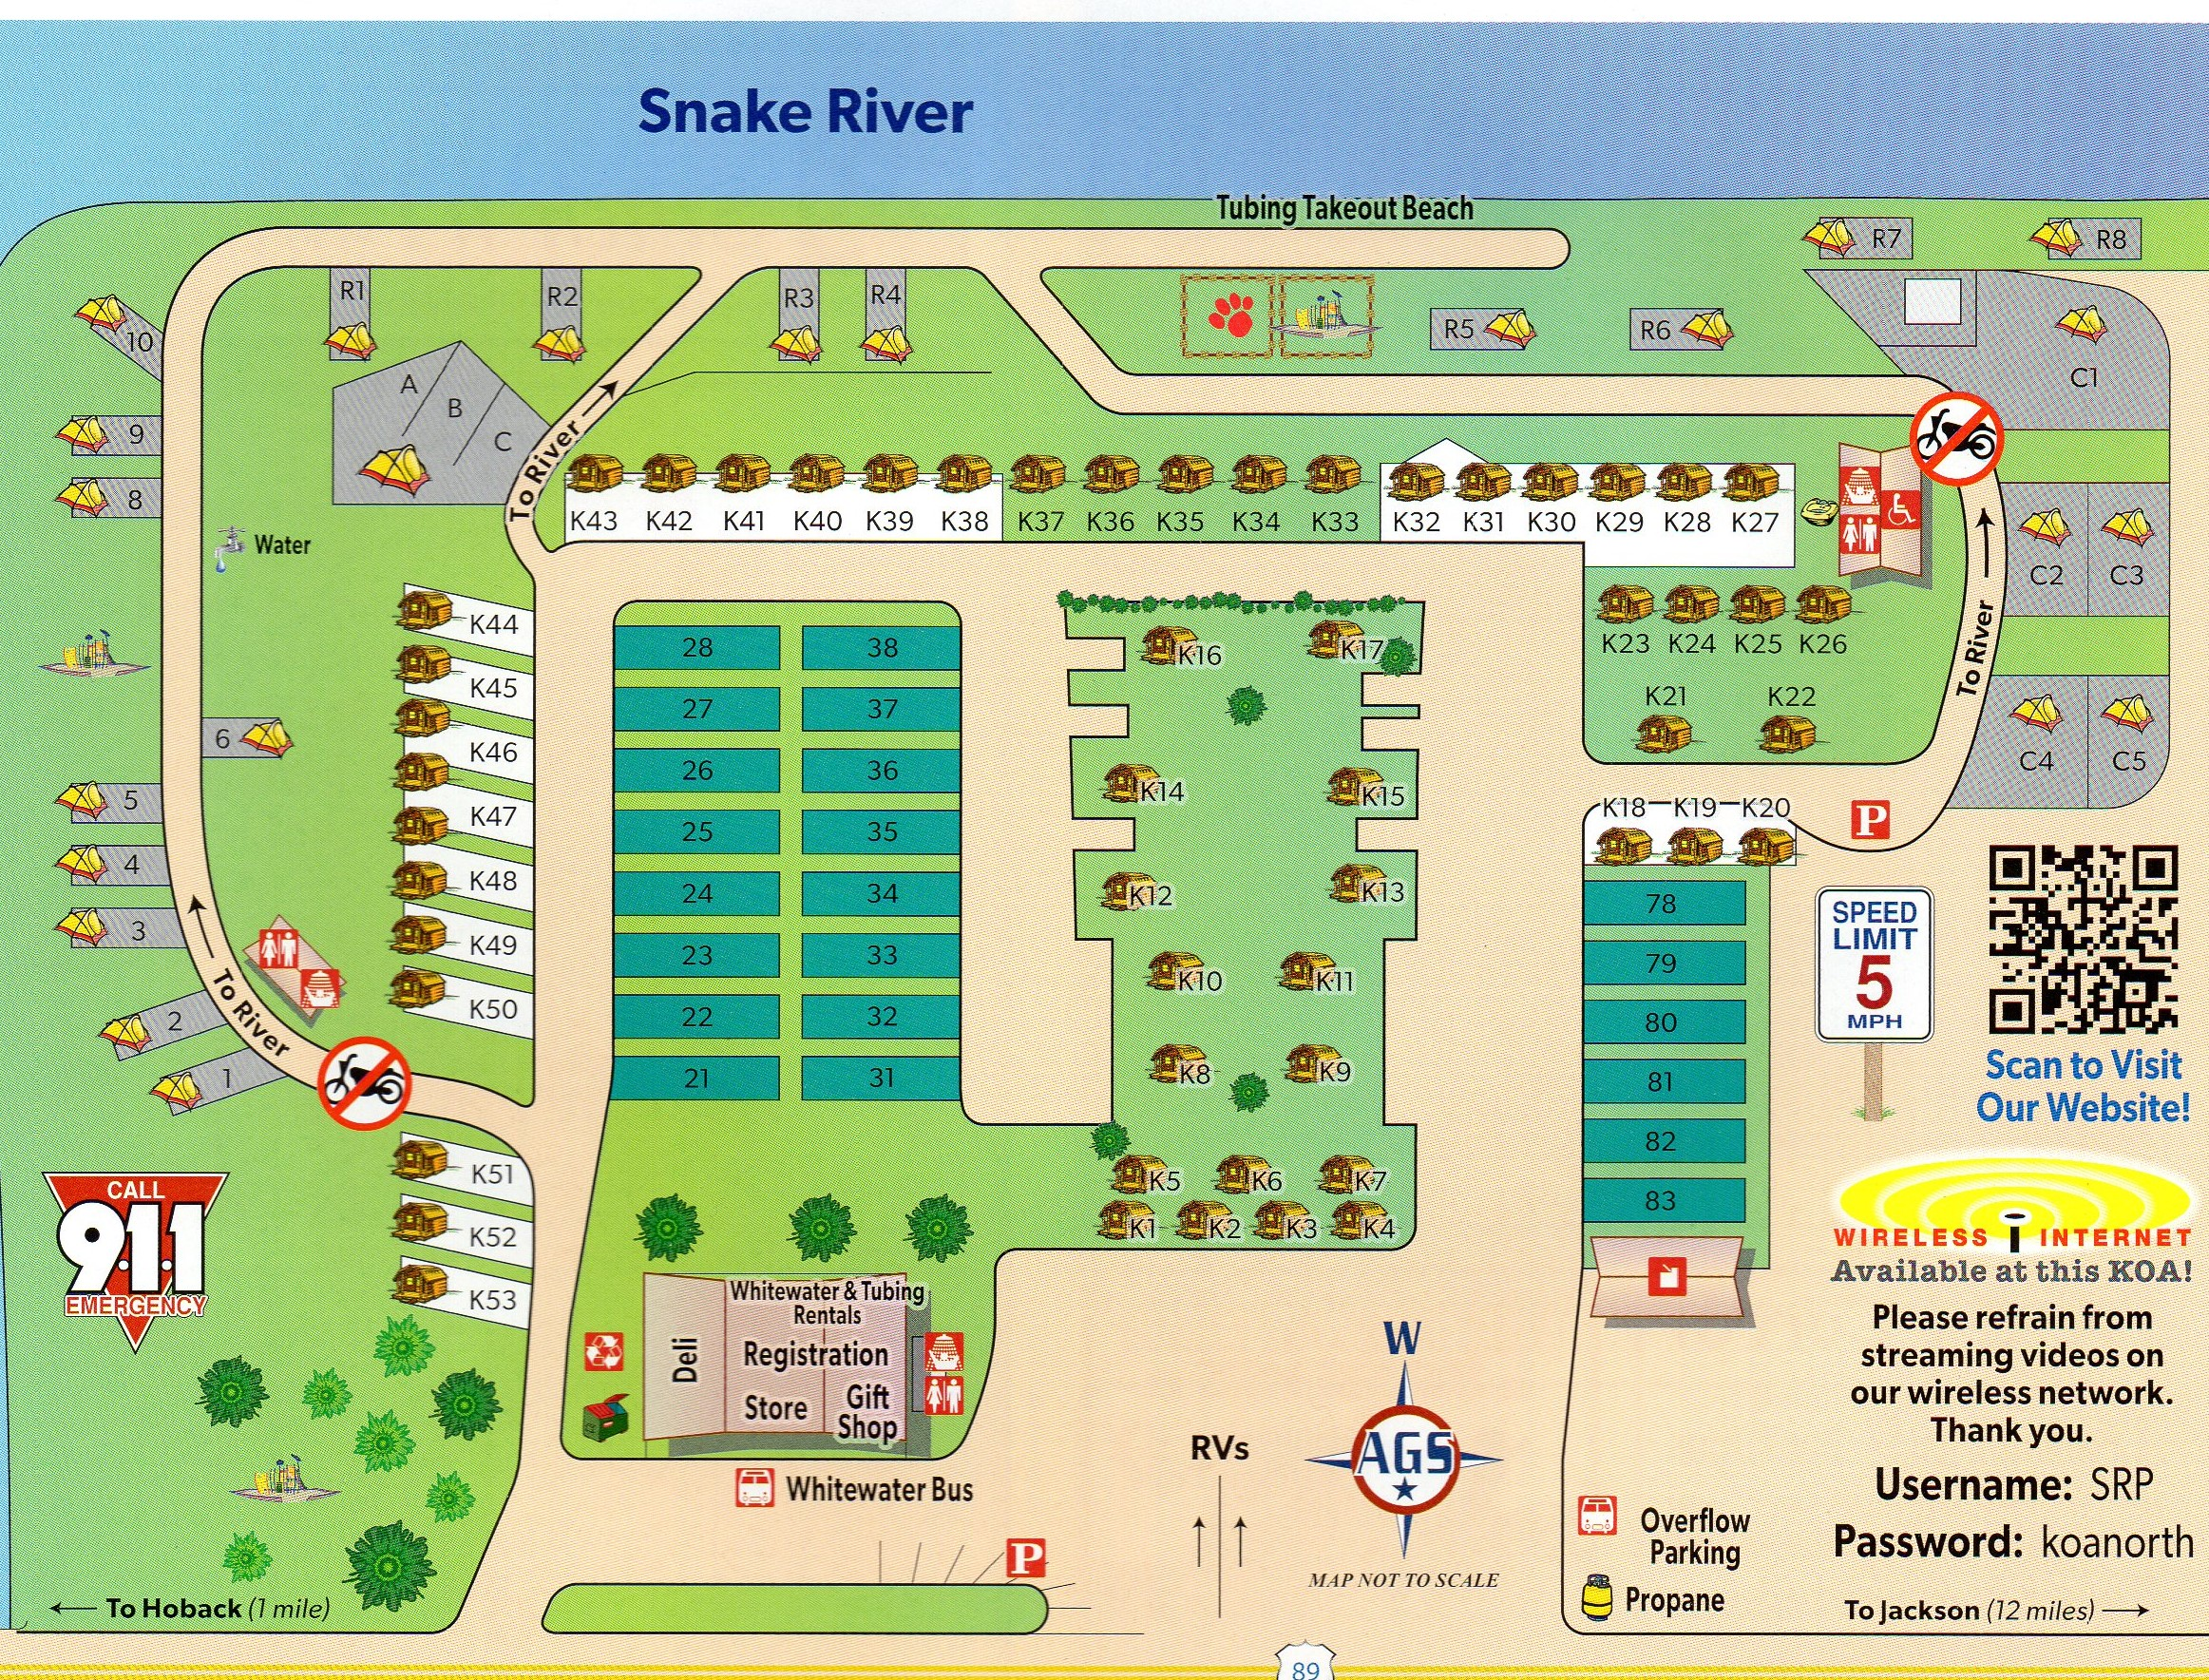 Jackson, Wyoming Campground | Jackson Hole / Snake River KOA